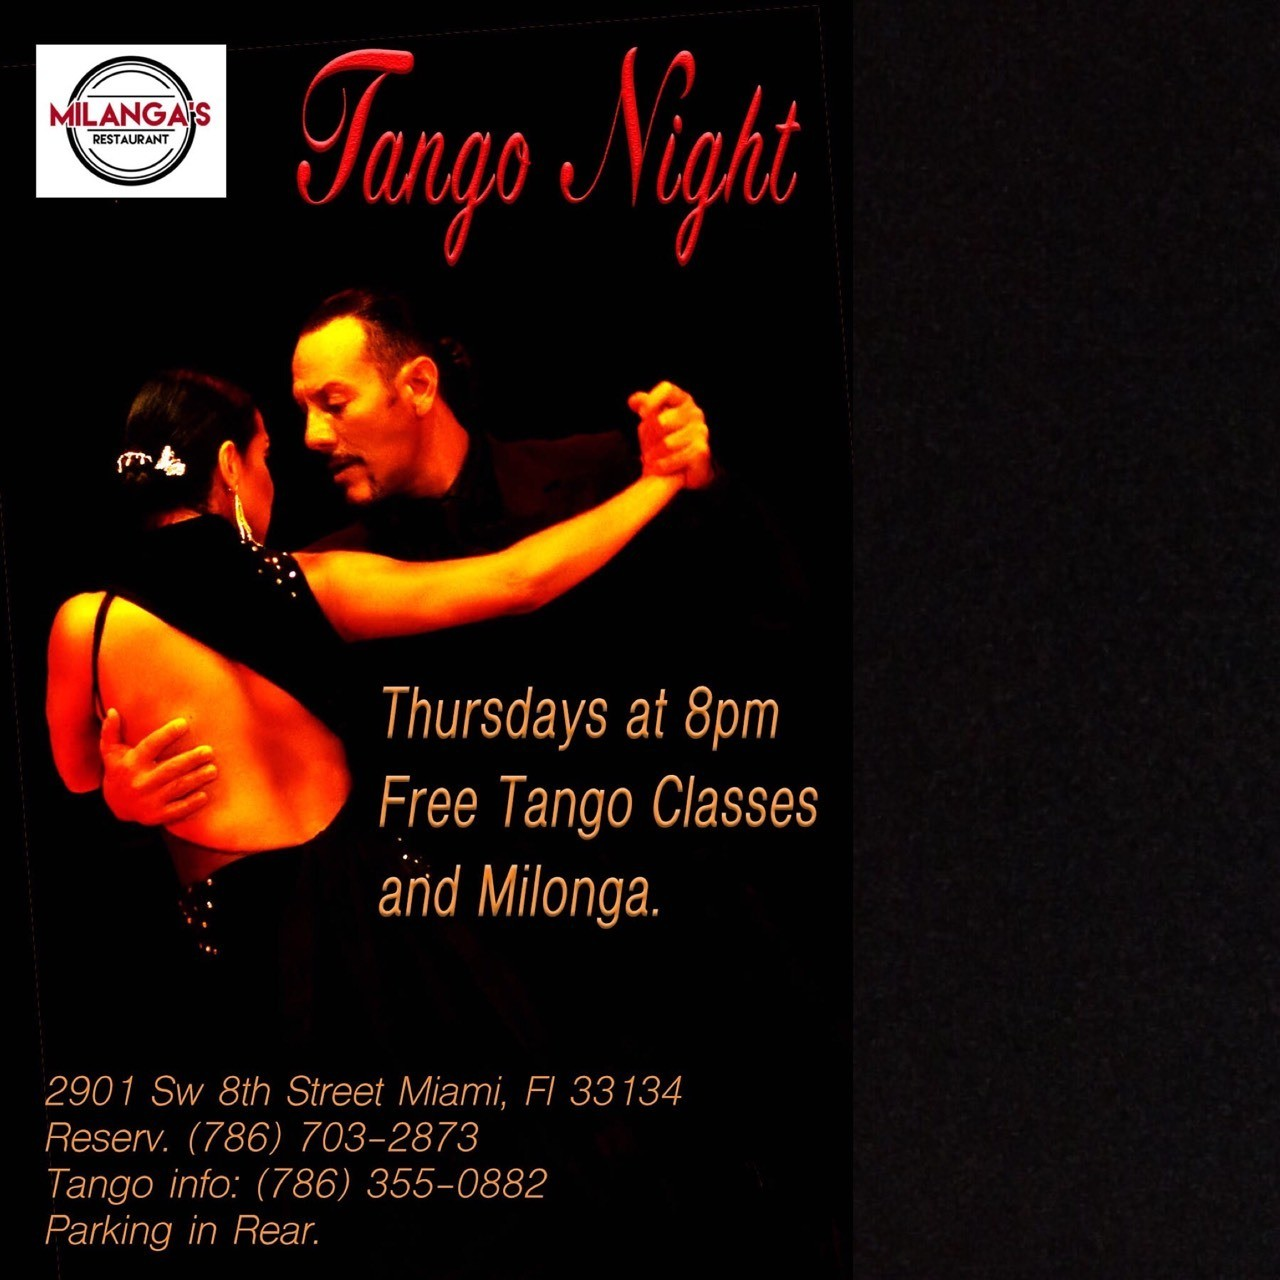 Free Tango Classes and Milonga in South Miami. Little Havana, Coral Gables